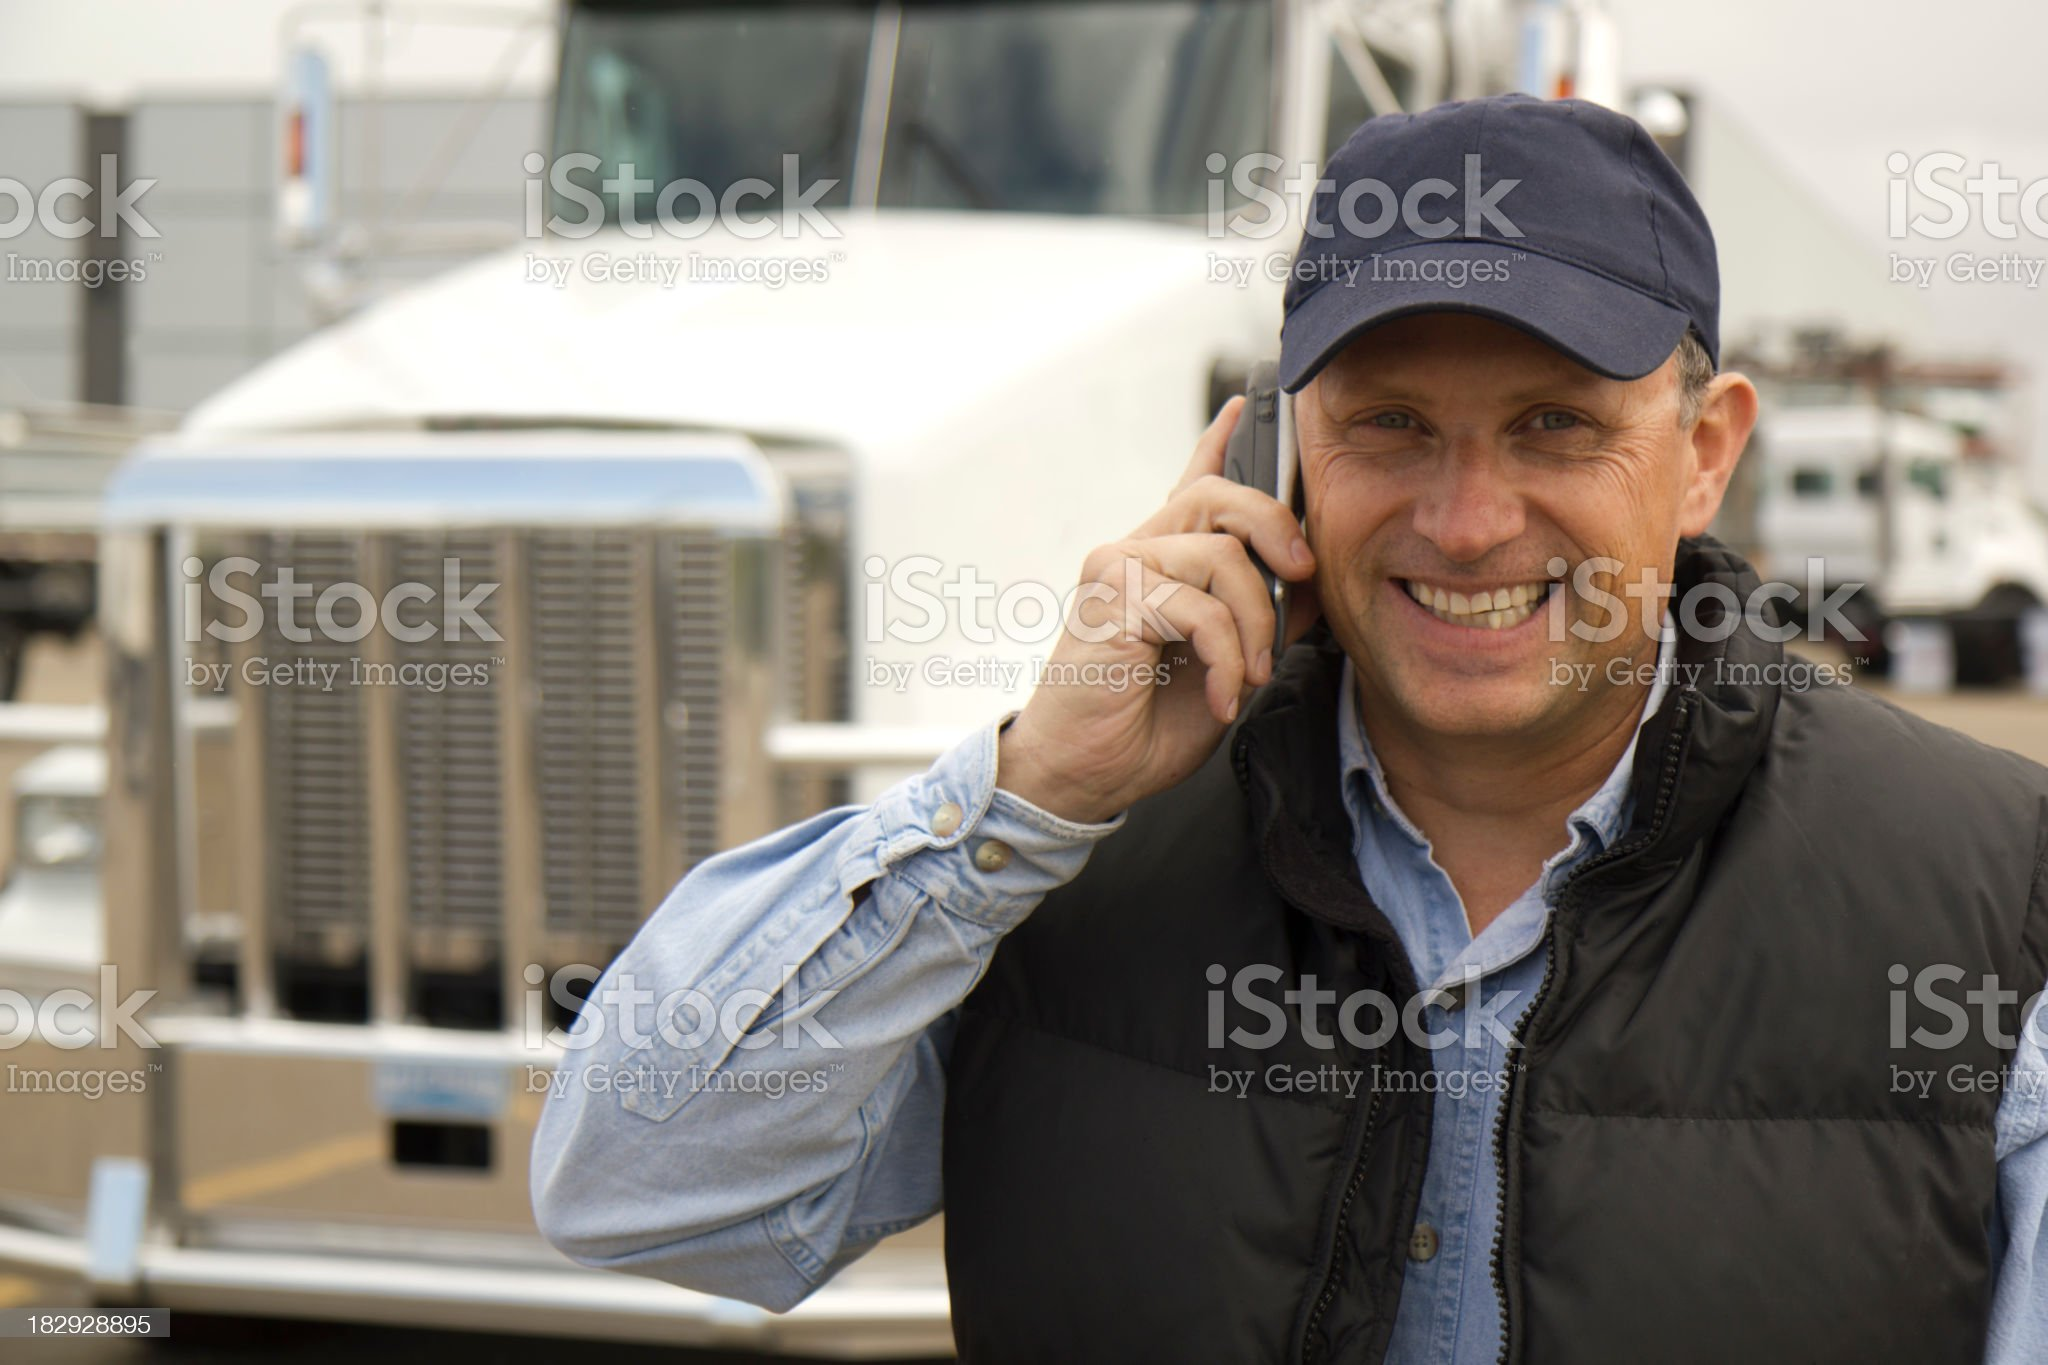 Smiling Trucker on the Phone royalty-free stock photo